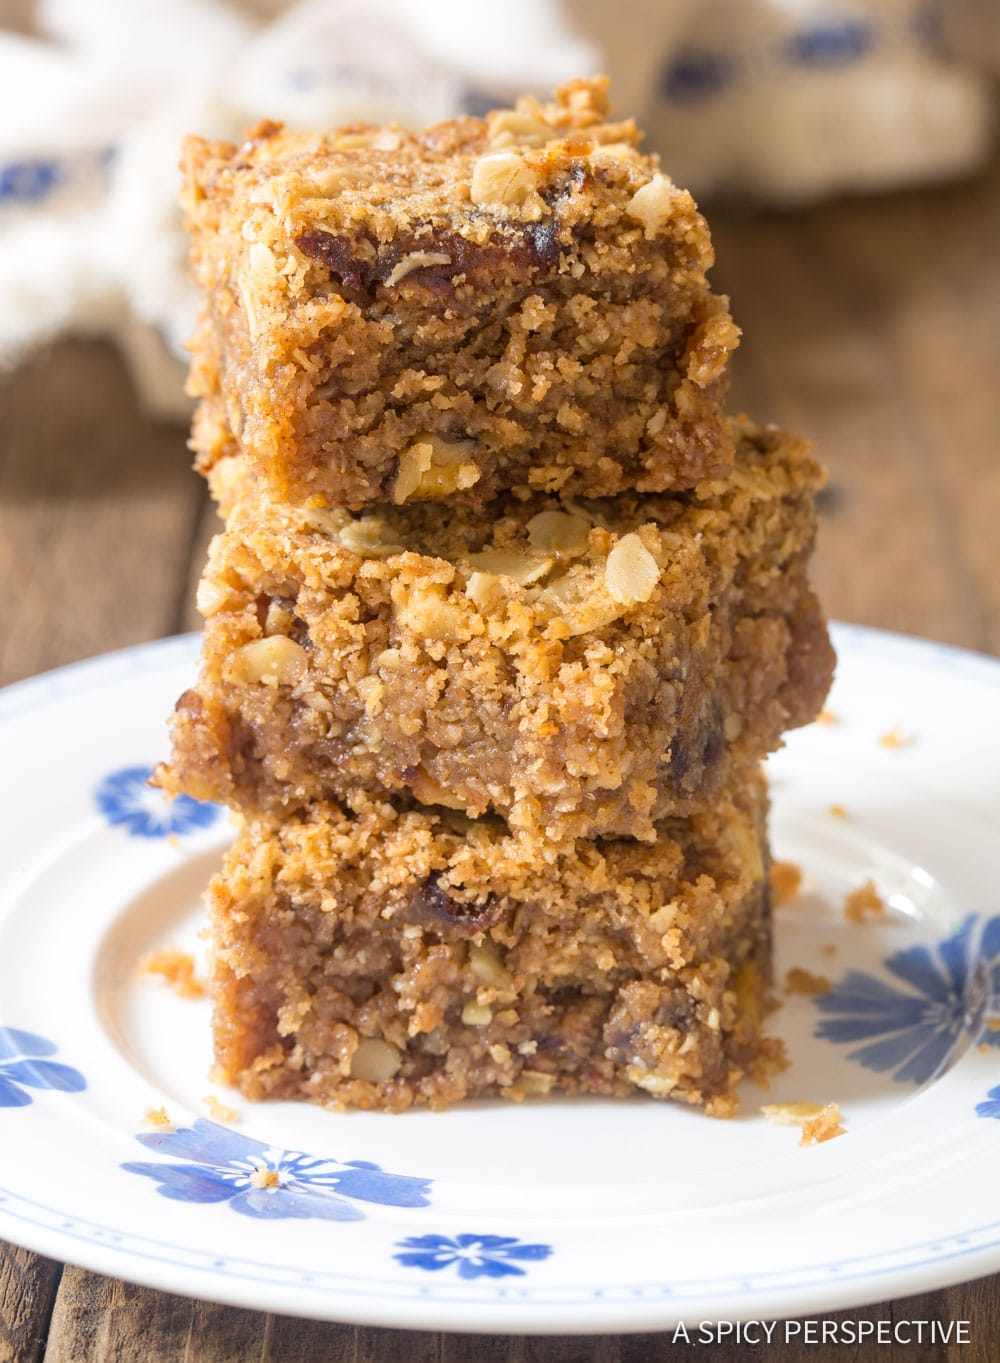 Soft Sweet Breakfast Oat Bar Recipe #GlutenFree #Vegan #ASpicyPerspective